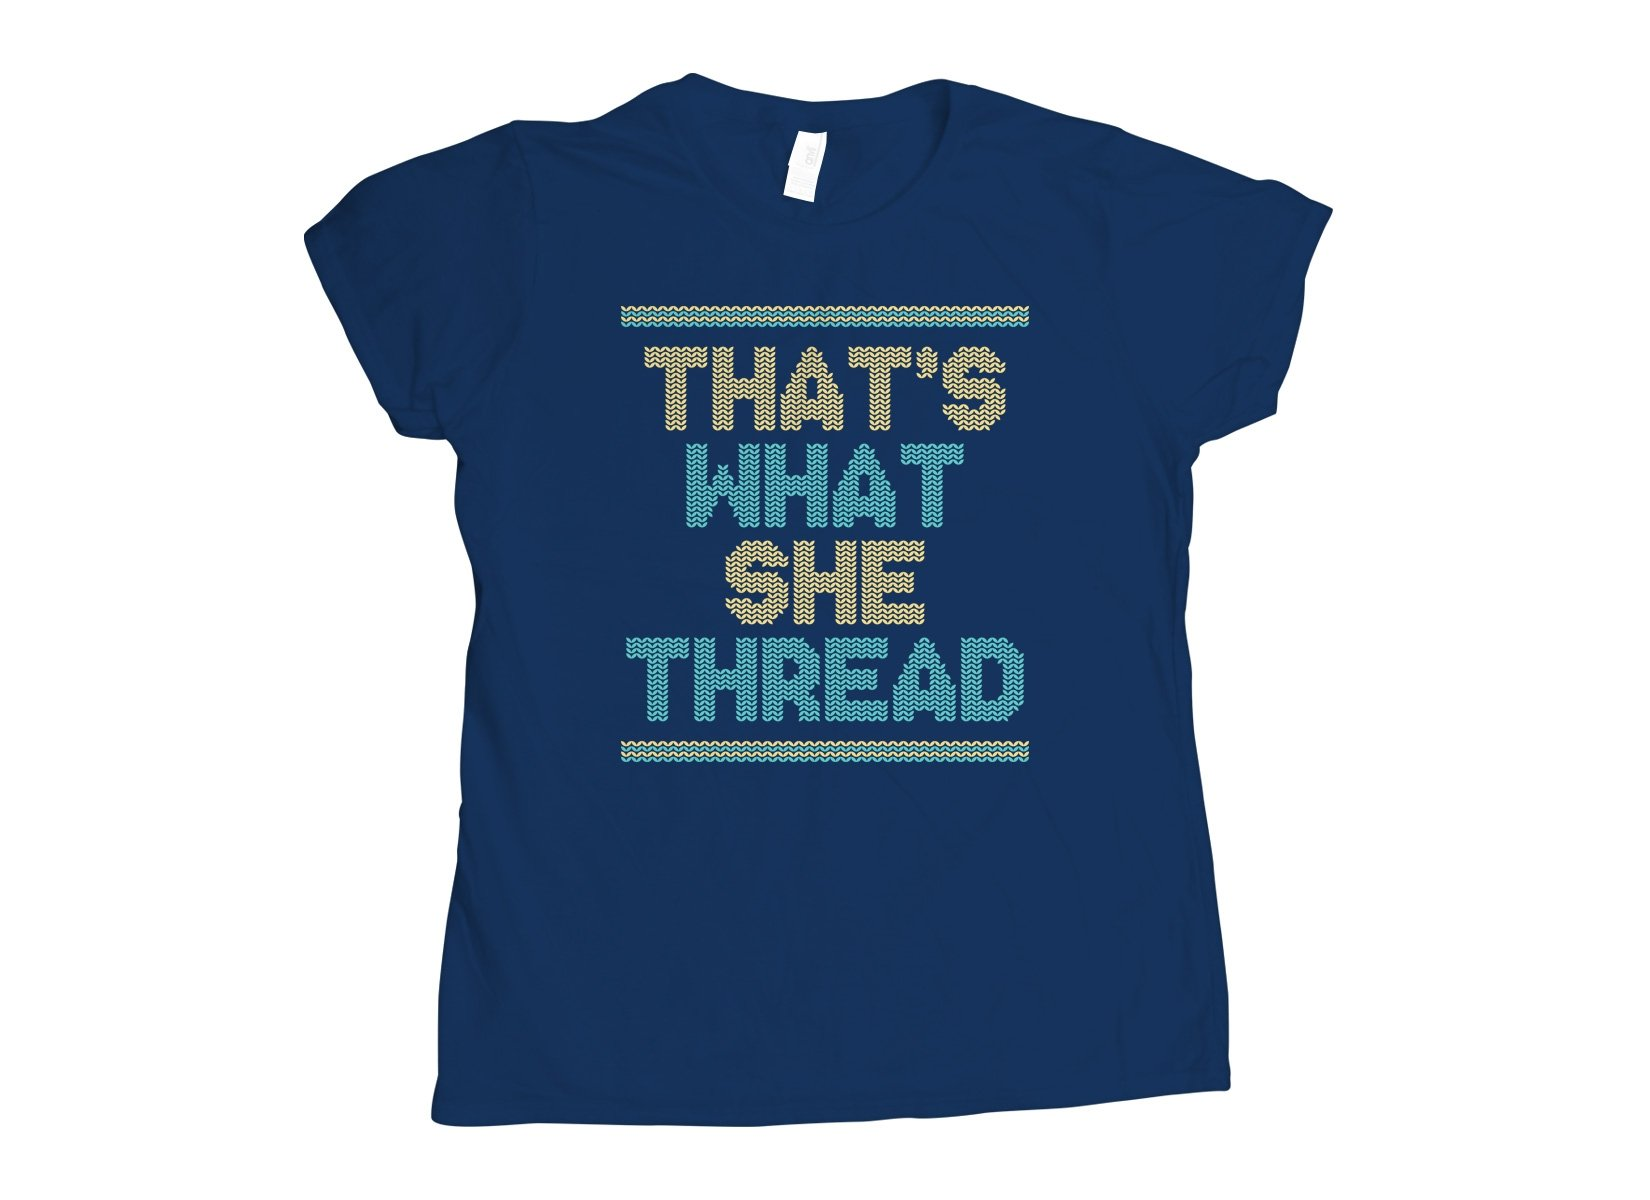 That's What She Thread on Womens T-Shirt